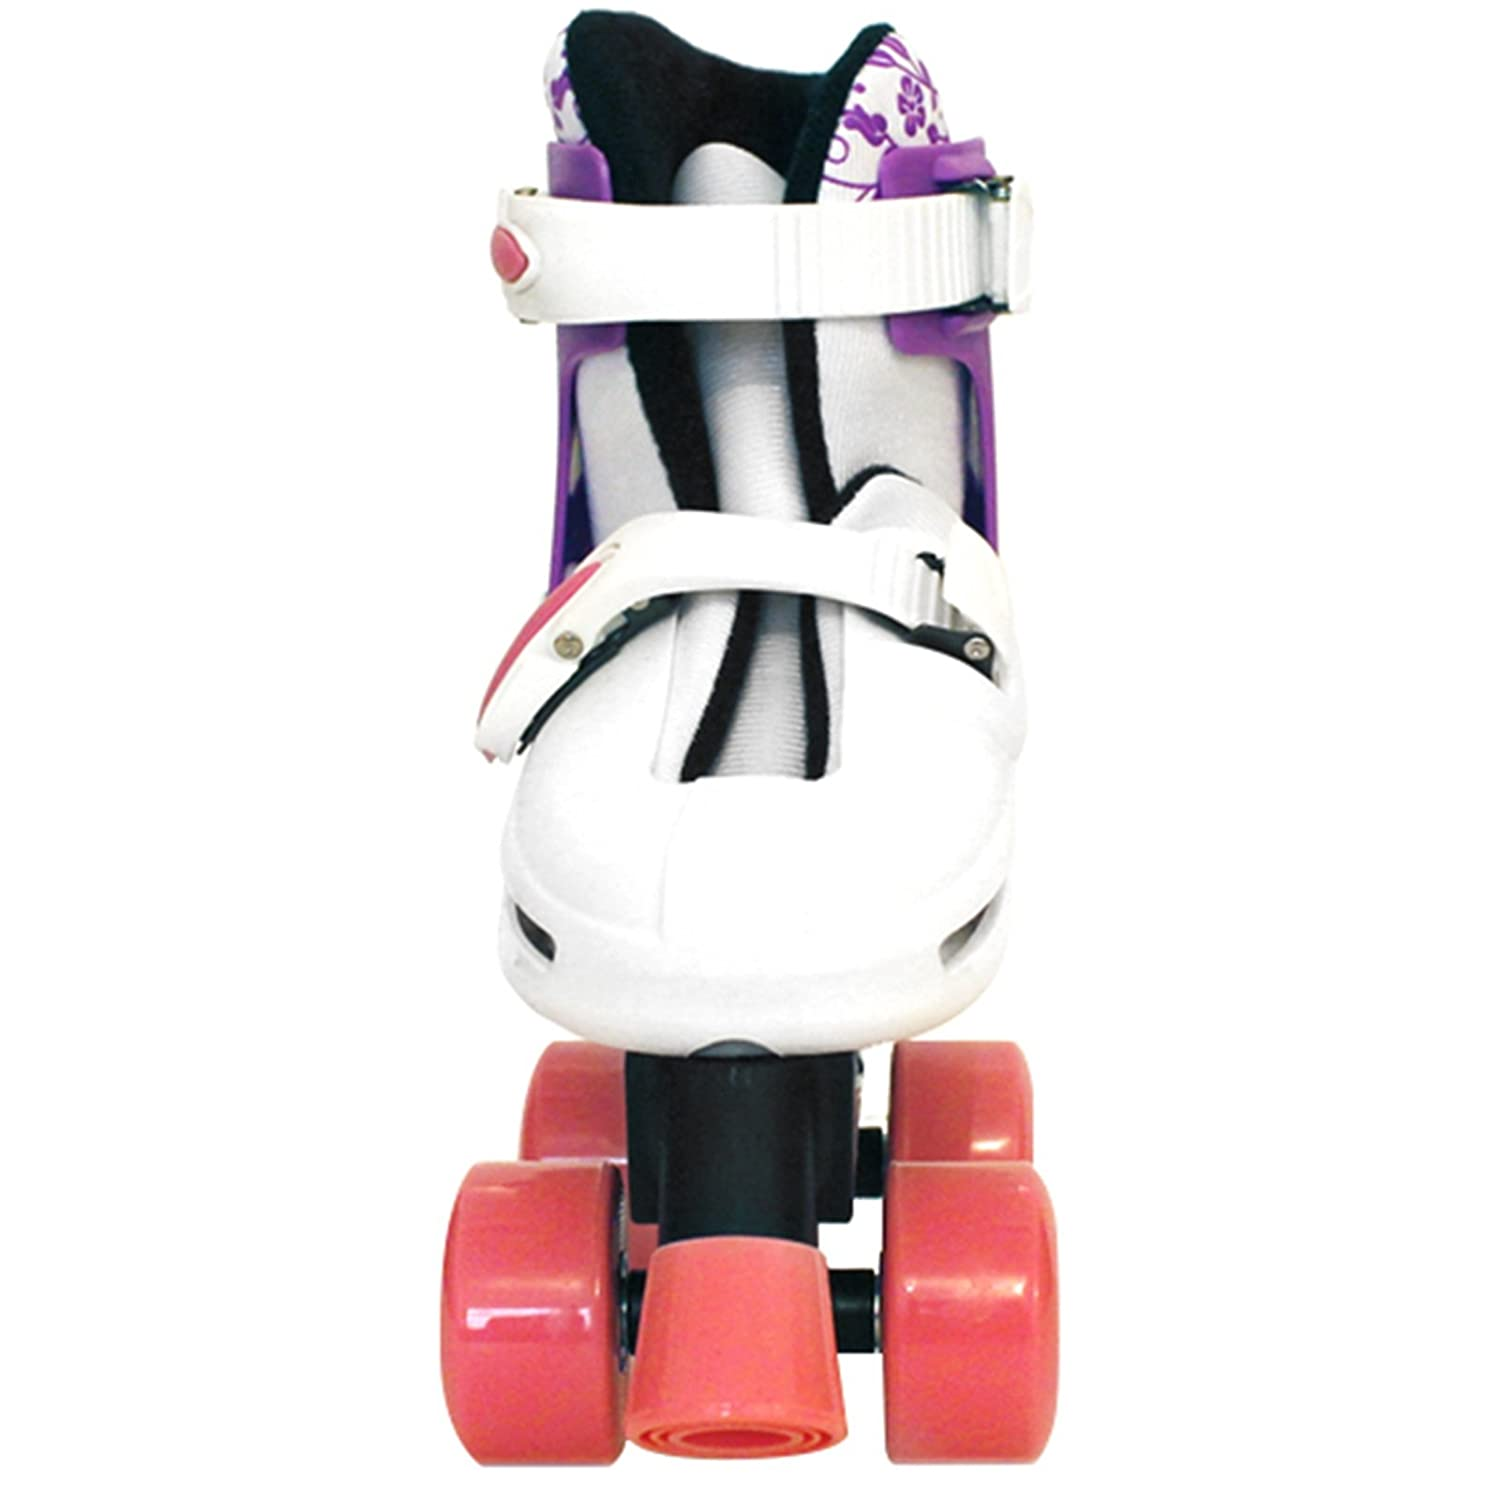 Sk8 Zone Girls Pink White Quad Skates Padded Kids Roller Boots Safety Pads Helmet Childrens Skate Set Sk8 ZoneTM️ By Eurotrade